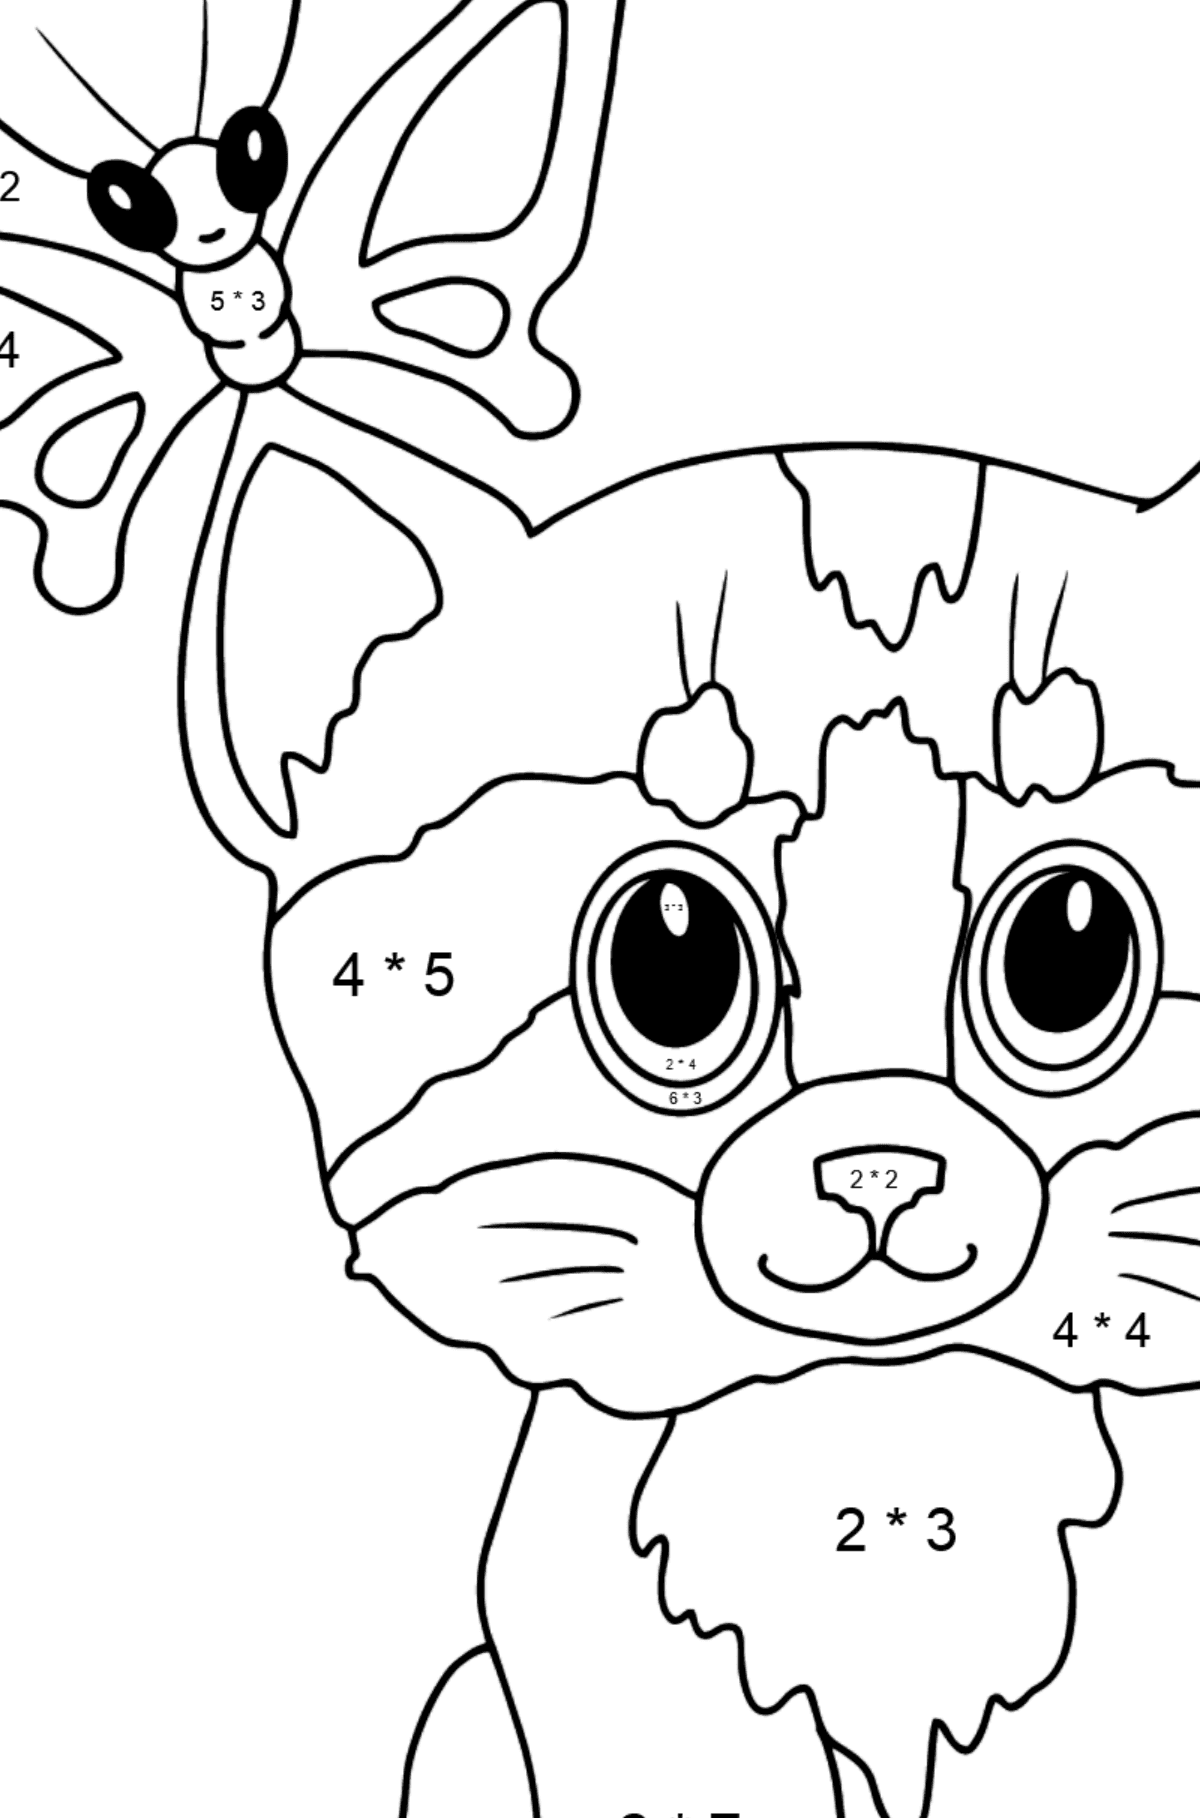 Coloring Page - A Kitten has Caught a Butterfly - Math Coloring - Multiplication for Kids